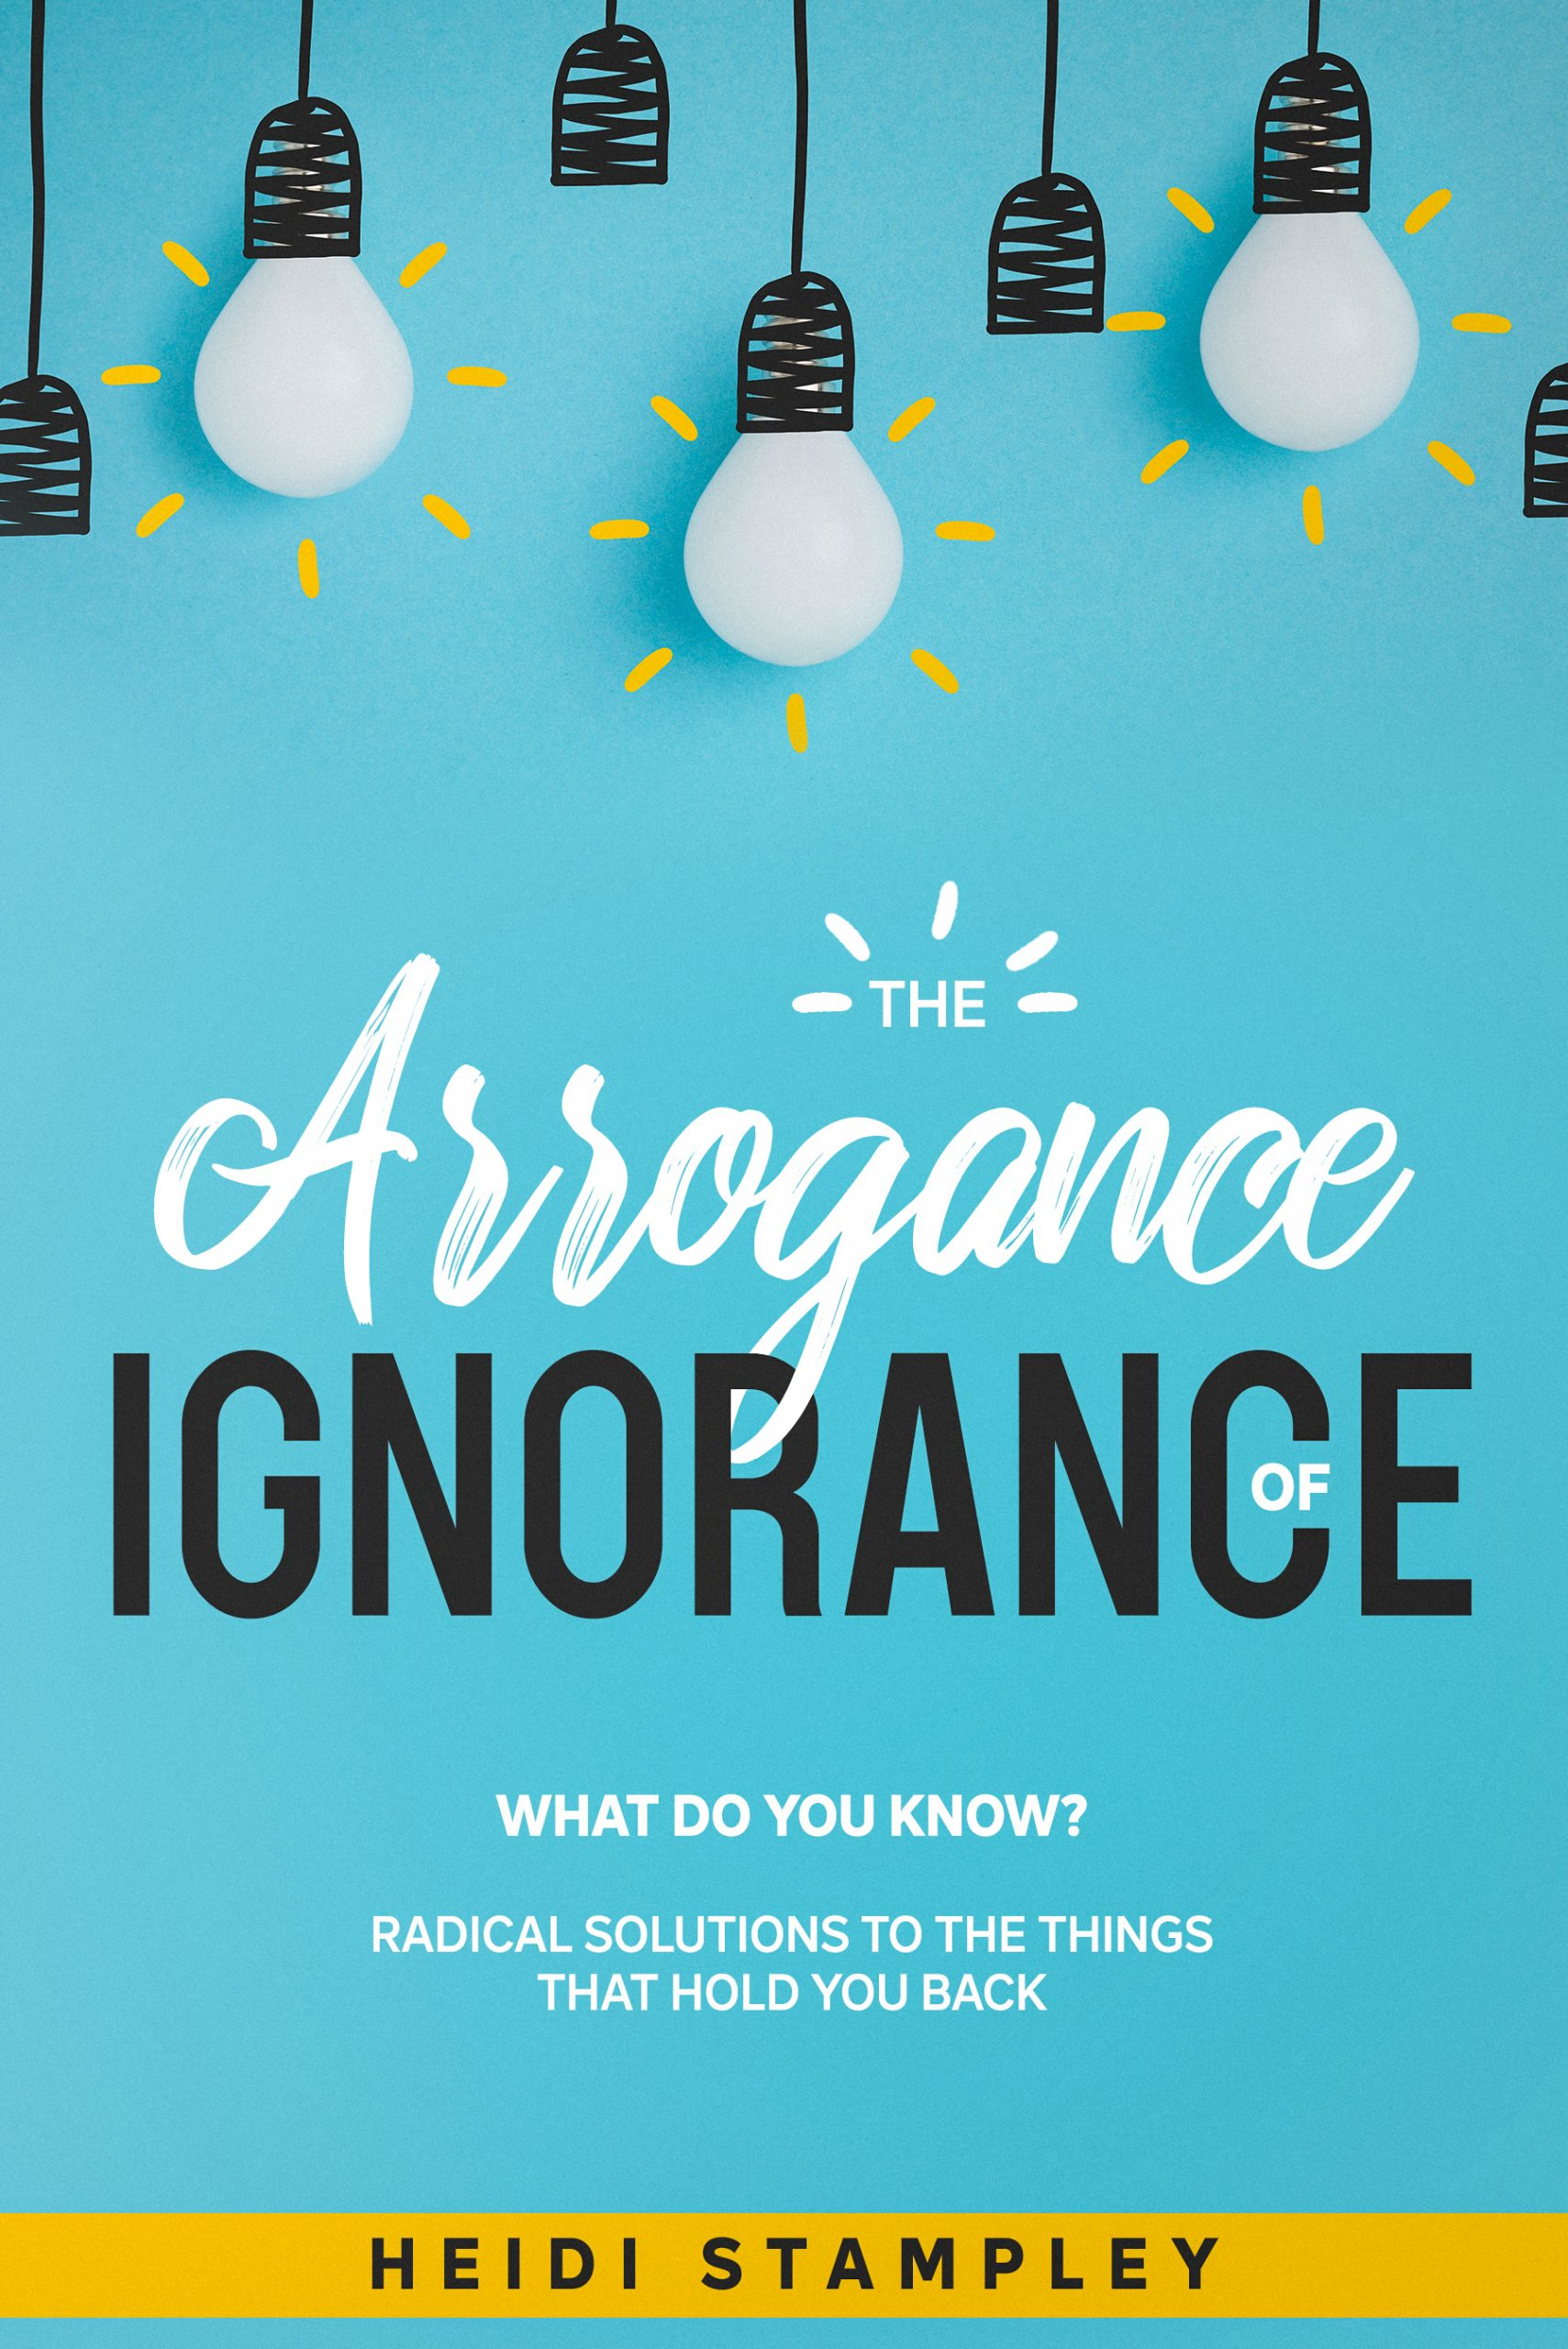 Heidi Stampley Launches Debut Book: The Arrogance of Ignorance 6